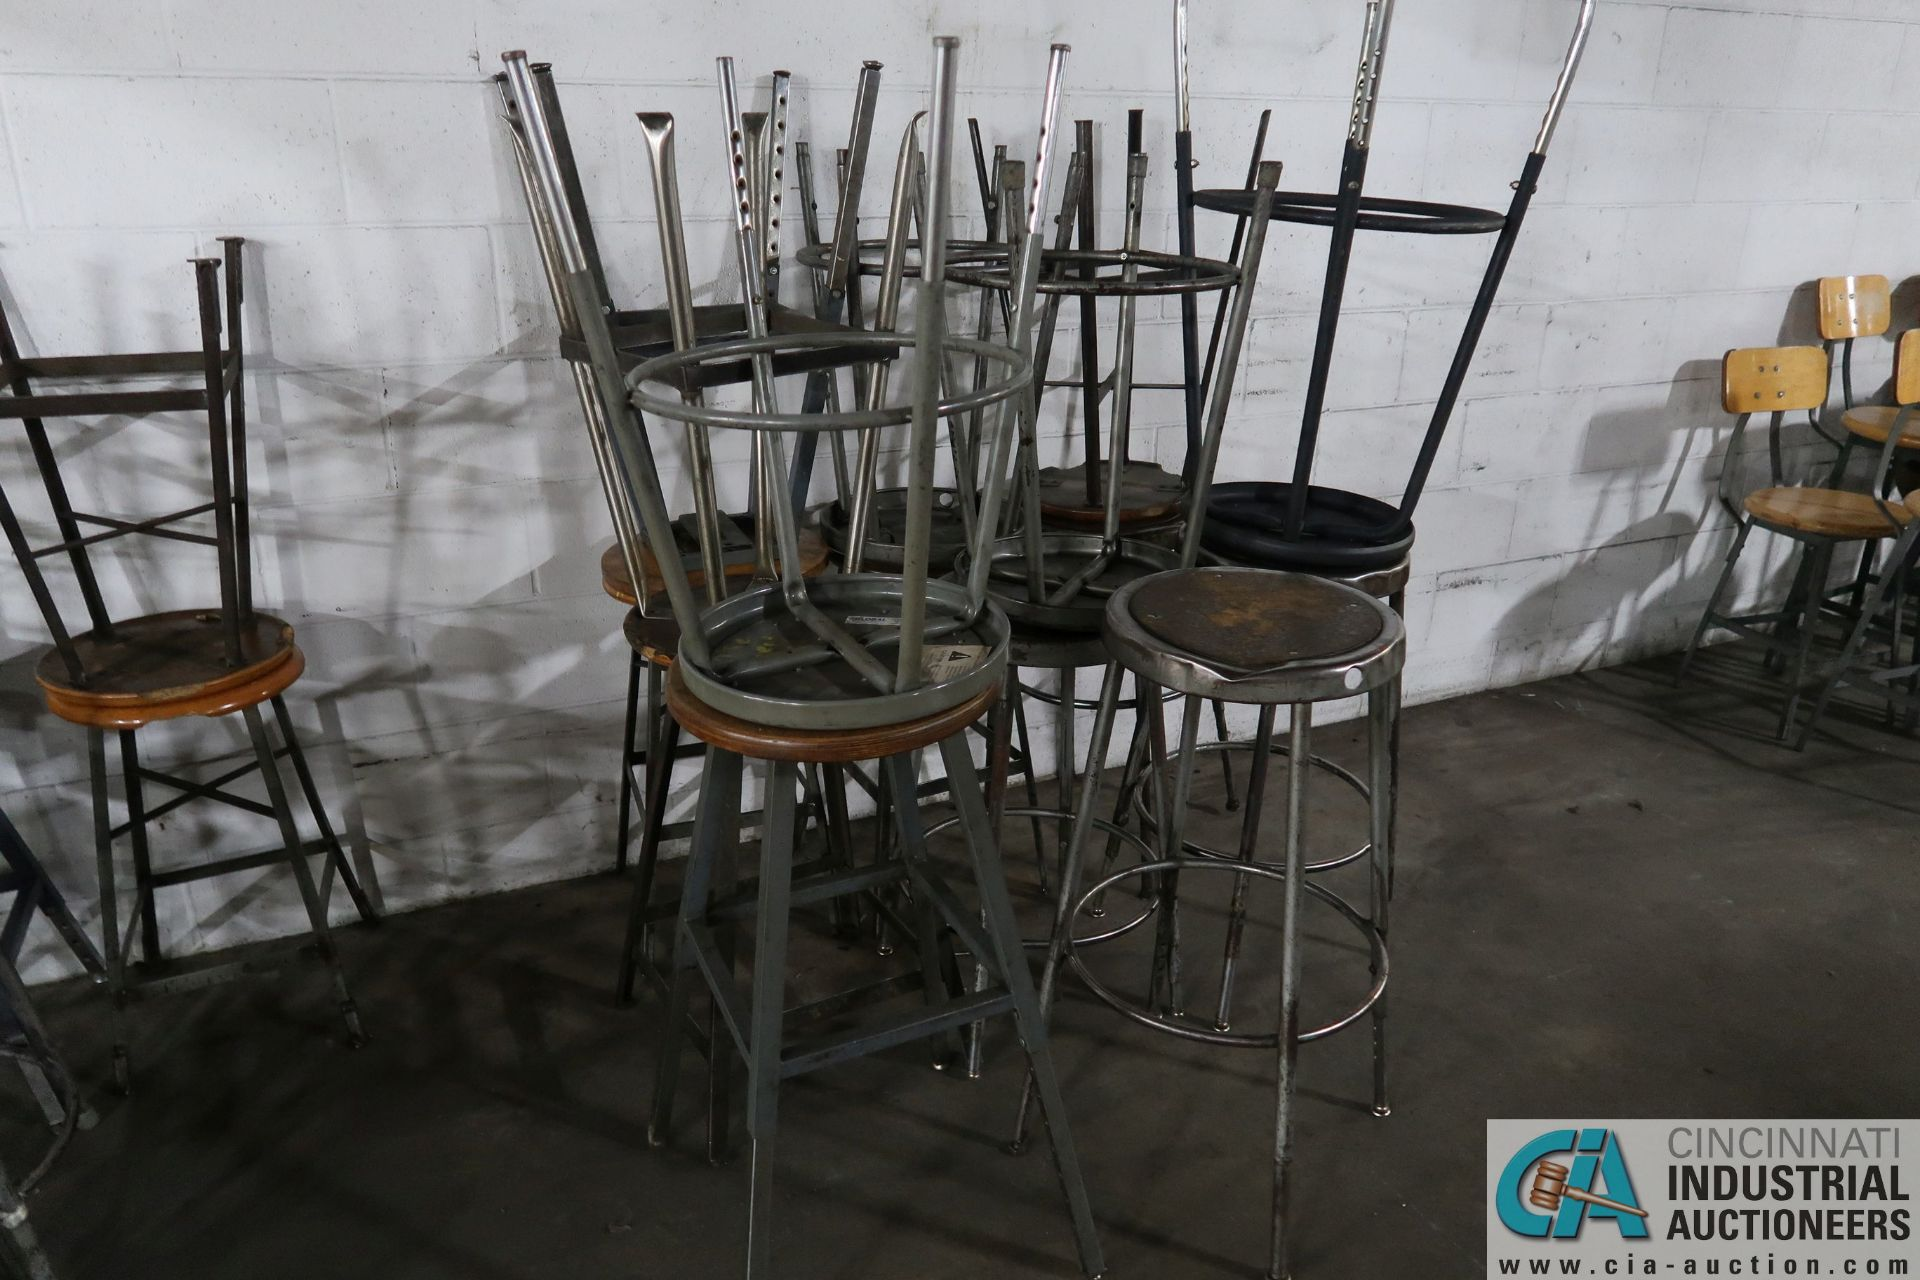 BARSTOOL STYLE STEEL FRAME WOOD SEAT SHOP CHAIRS - Image 2 of 2